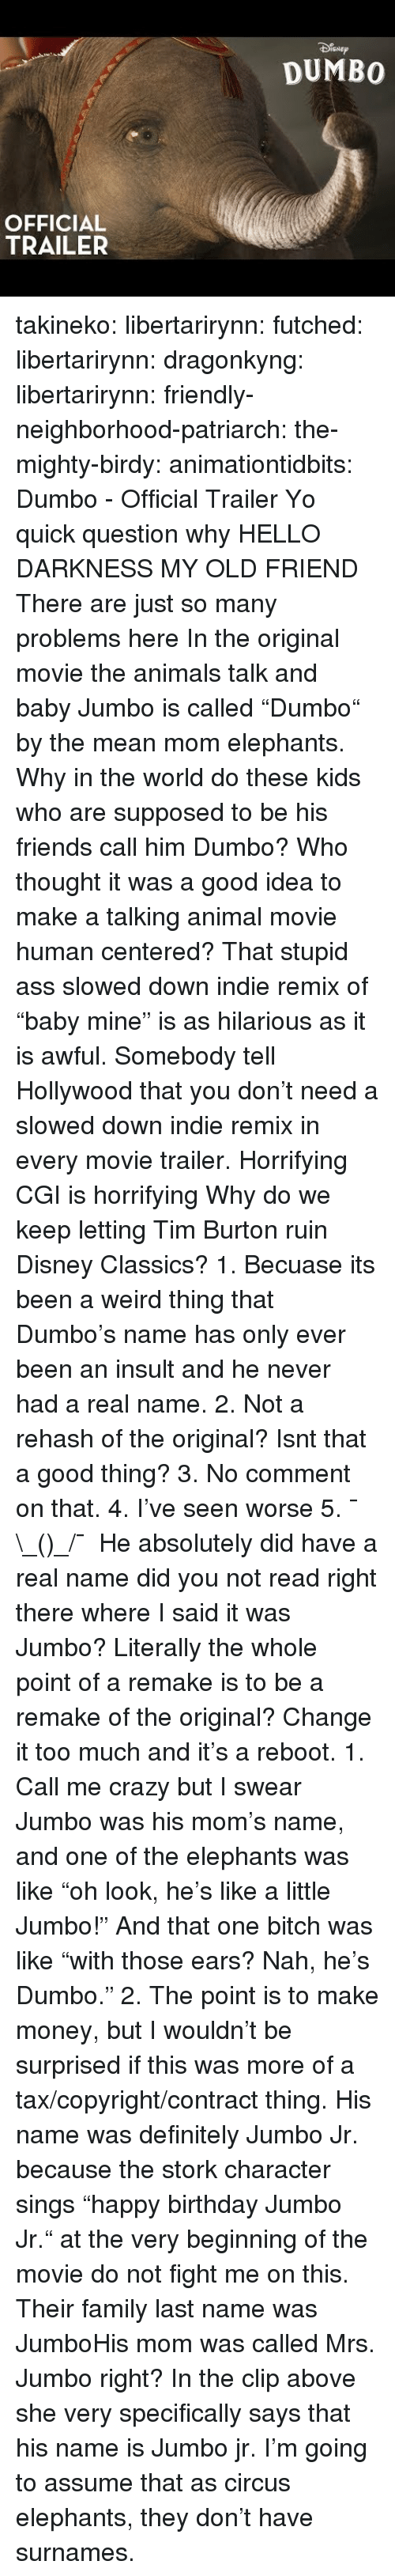 "metadata: SNEp  DUMBO  OFFICIAL  TRAILER takineko:  libertarirynn: futched:   libertarirynn:   dragonkyng:   libertarirynn:   friendly-neighborhood-patriarch:  the-mighty-birdy:   animationtidbits:  Dumbo - Official Trailer  Yo quick question why   HELLO DARKNESS MY OLD FRIEND   There are just so many problems here In the original movie the animals talk and baby Jumbo is called ""Dumbo"" by the mean mom elephants. Why in the world do these kids who are supposed to be his friends call him Dumbo? Who thought it was a good idea to make a talking animal movie human centered? That stupid ass slowed down indie remix of ""baby mine"" is as hilarious as it is awful. Somebody tell Hollywood that you don't need a slowed down indie remix in every movie trailer. Horrifying CGI is horrifying Why do we keep letting Tim Burton ruin Disney Classics?   1. Becuase its been a weird thing that Dumbo's name has only ever been an insult and he never had a real name. 2. Not a rehash of the original? Isnt that a good thing? 3. No comment on that. 4. I've seen worse 5. ¯\_(ツ)_/¯   He absolutely did have a real name did you not read right there where I said it was Jumbo? Literally the whole point of a remake is to be a remake of the original? Change it too much and it's a reboot.   1. Call me crazy but I swear Jumbo was his mom's name, and one of the elephants was like ""oh look, he's like a little Jumbo!"" And that one bitch was like ""with those ears? Nah, he's Dumbo."" 2. The point is to make money, but I wouldn't be surprised if this was more of a tax/copyright/contract thing.   His name was definitely Jumbo Jr. because the stork character sings ""happy birthday Jumbo Jr."" at the very beginning of the movie do not fight me on this.  Their family last name was JumboHis mom was called Mrs. Jumbo right?  In the clip above she very specifically says that his name is Jumbo jr. I'm going to assume that as circus elephants, they don't have surnames."